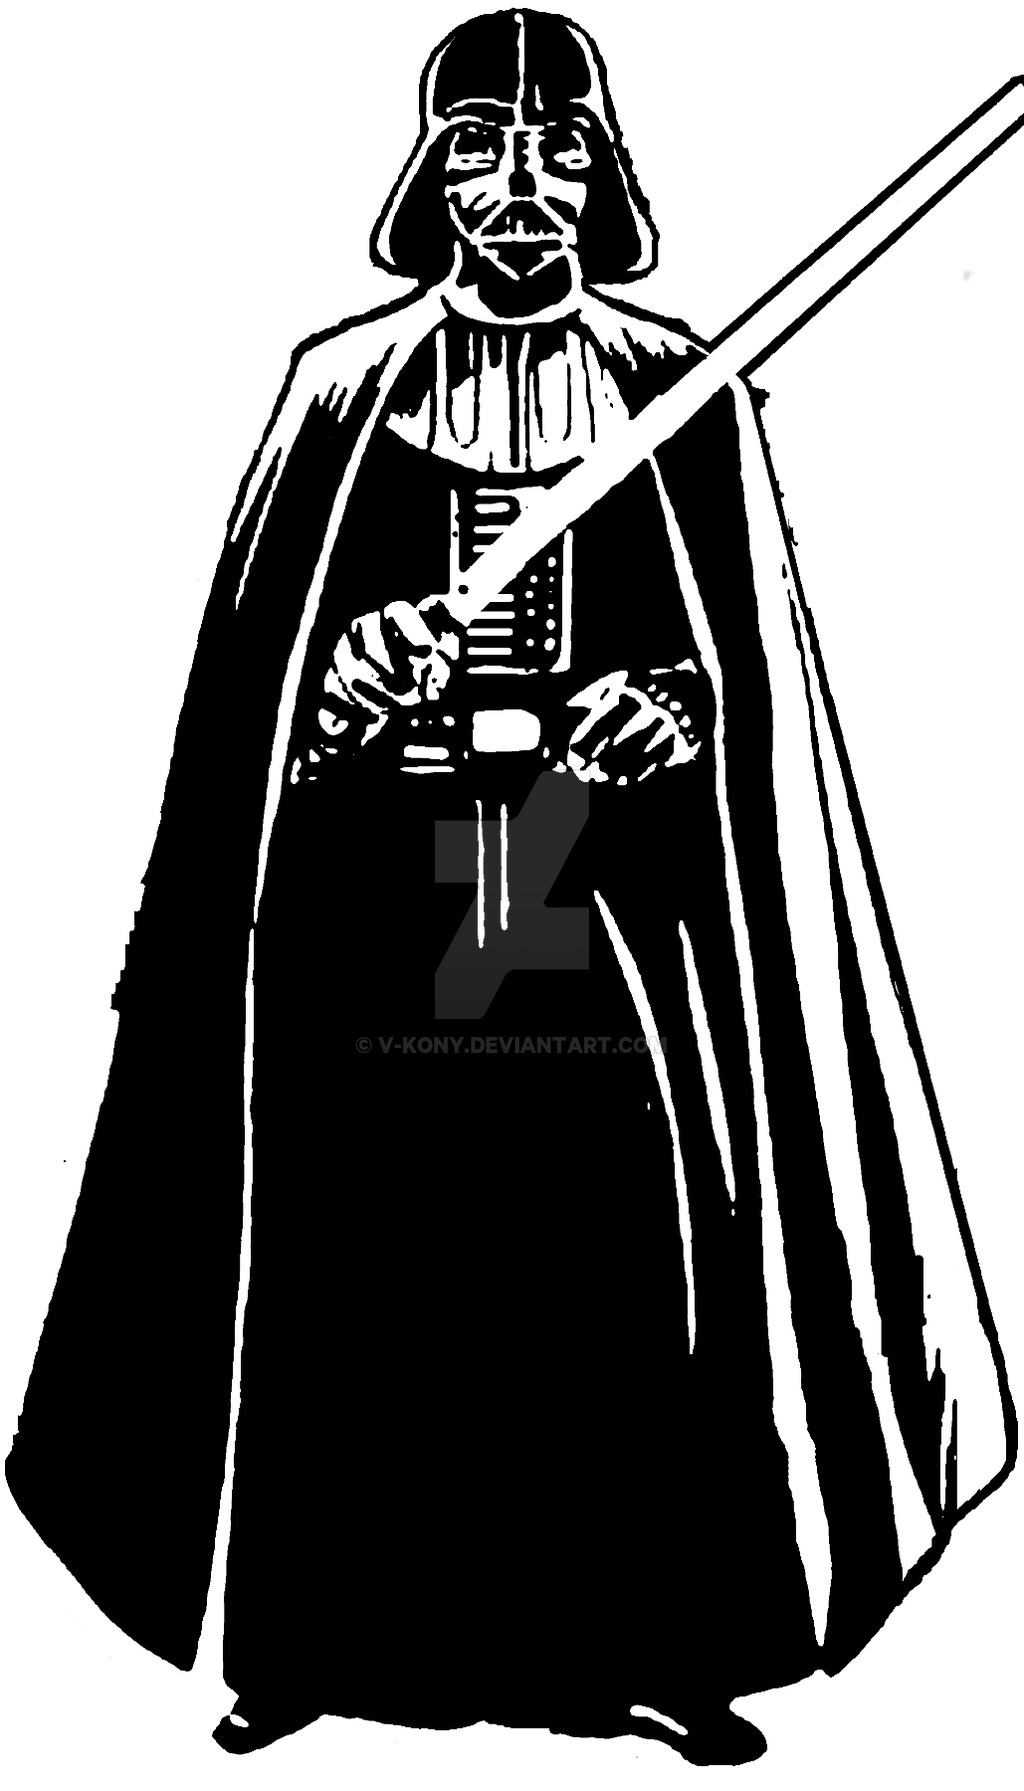 Darth vader clip art tumundografico clipart best for Darth vader black and white